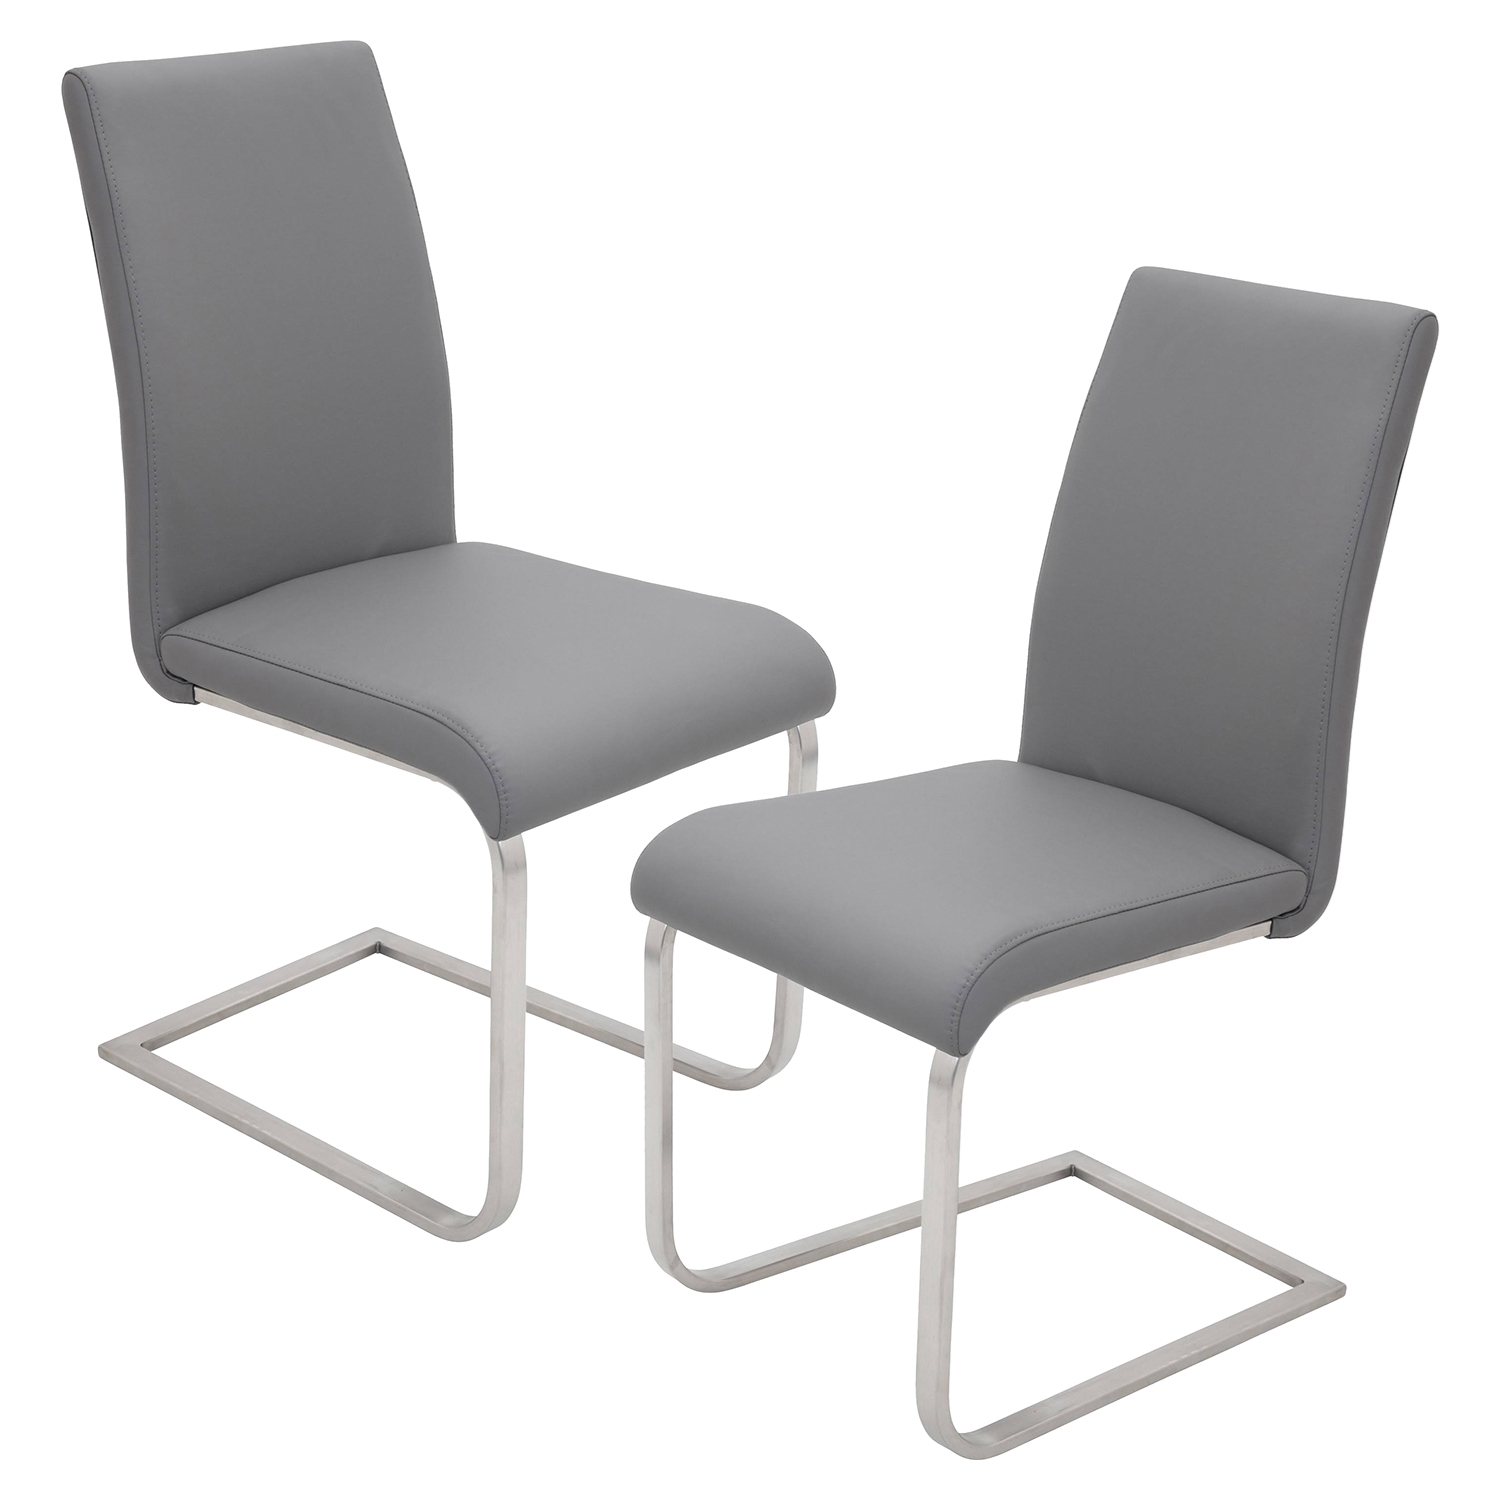 Foster Dining Chair - Gray (Set of 2)